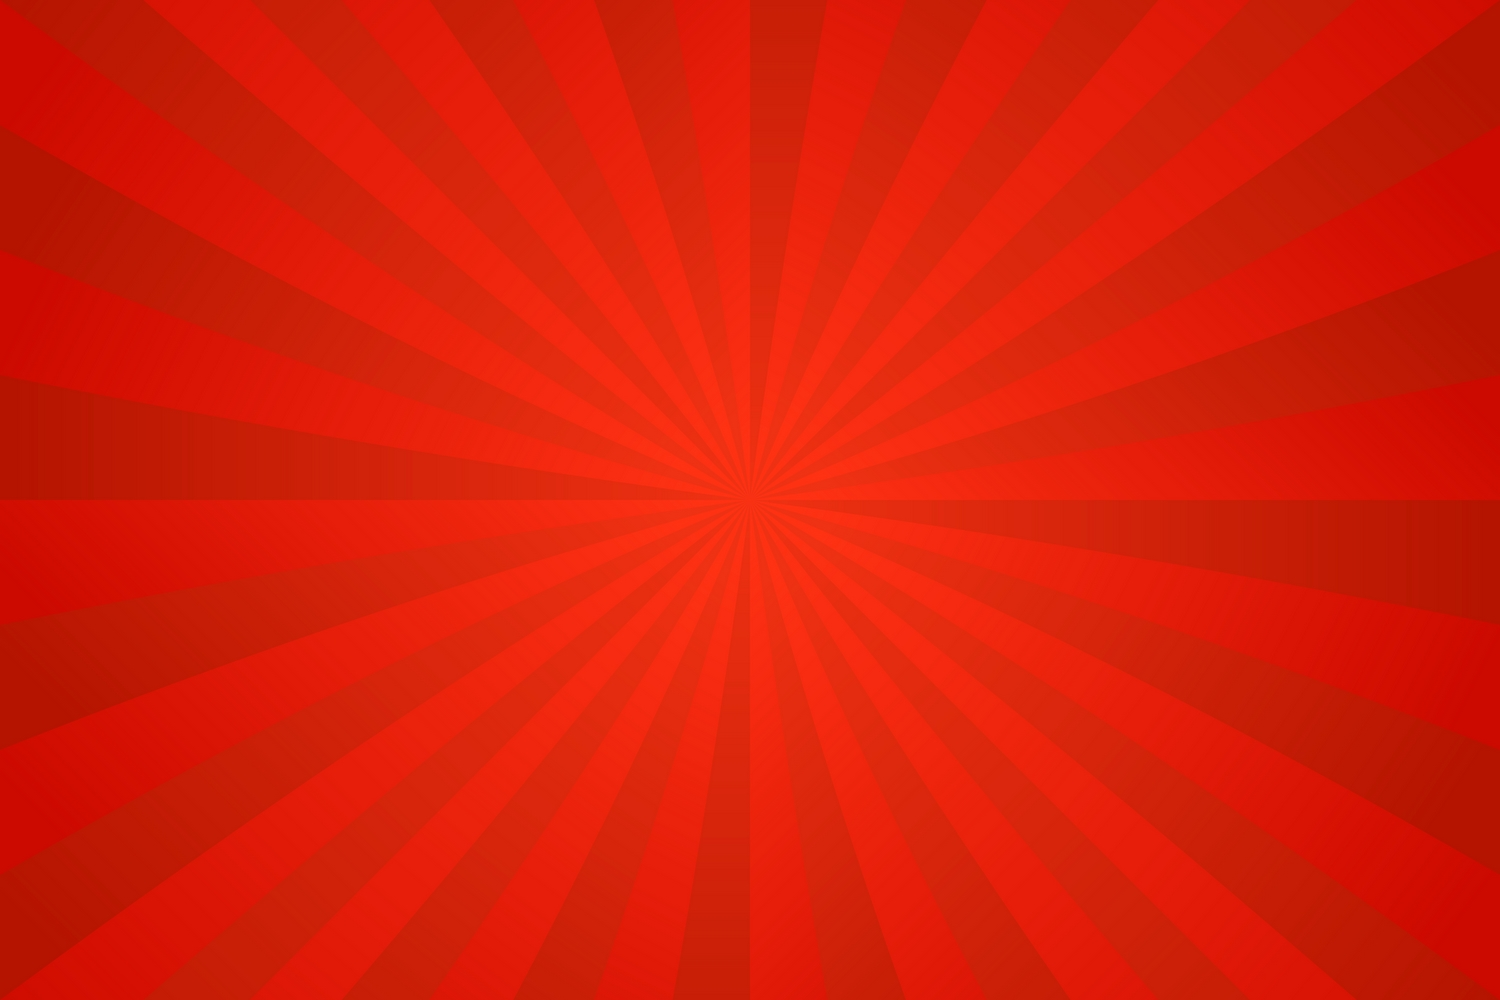 10 colorful vector ray burst backgrounds example image 2